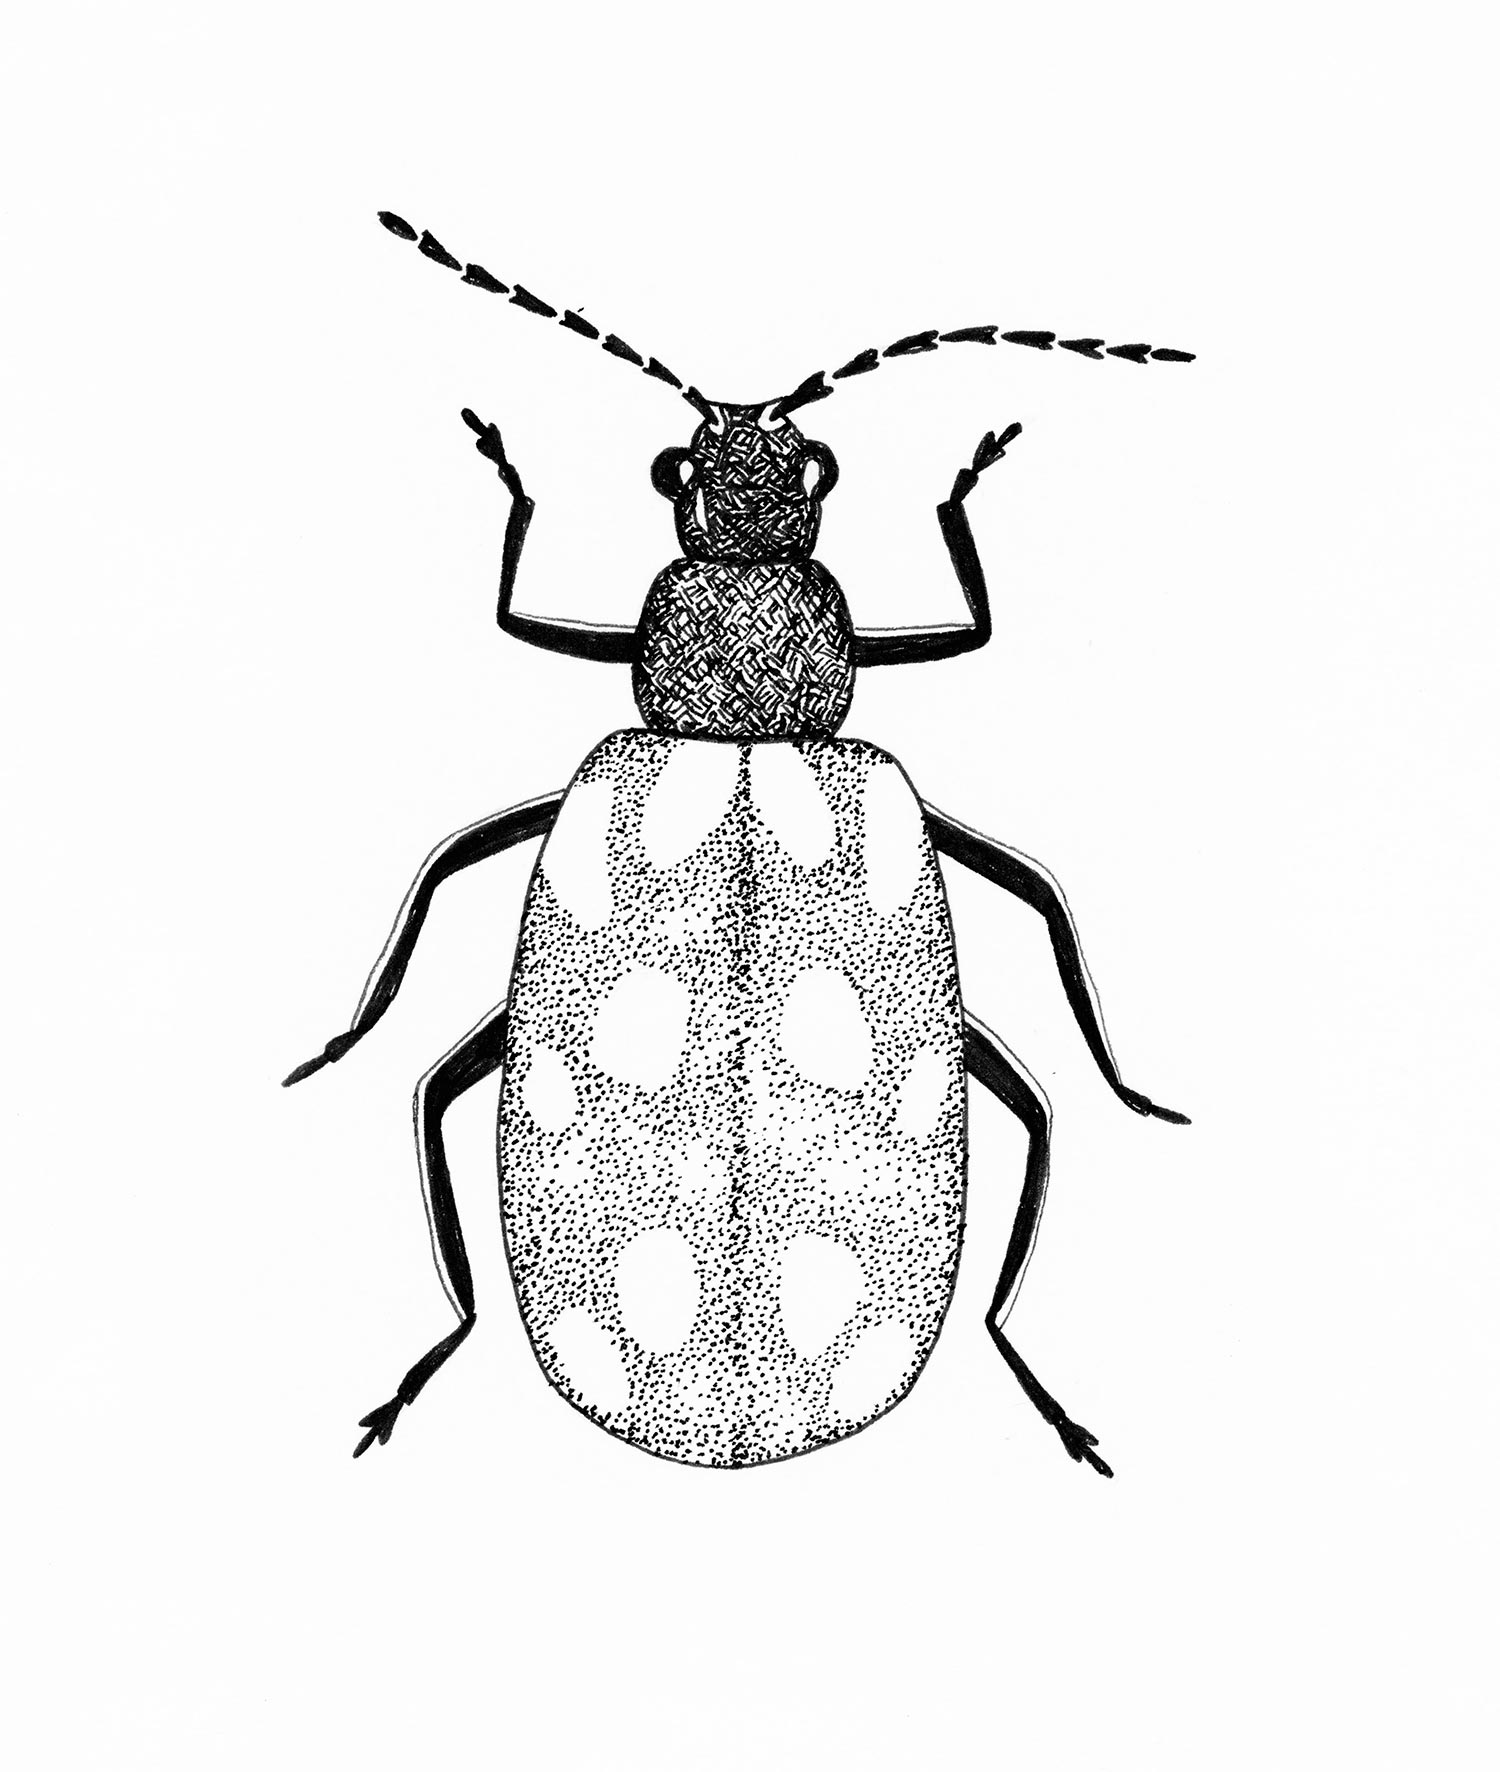 emily-rose-artist--beetle--pen--drawing--observations.jpg